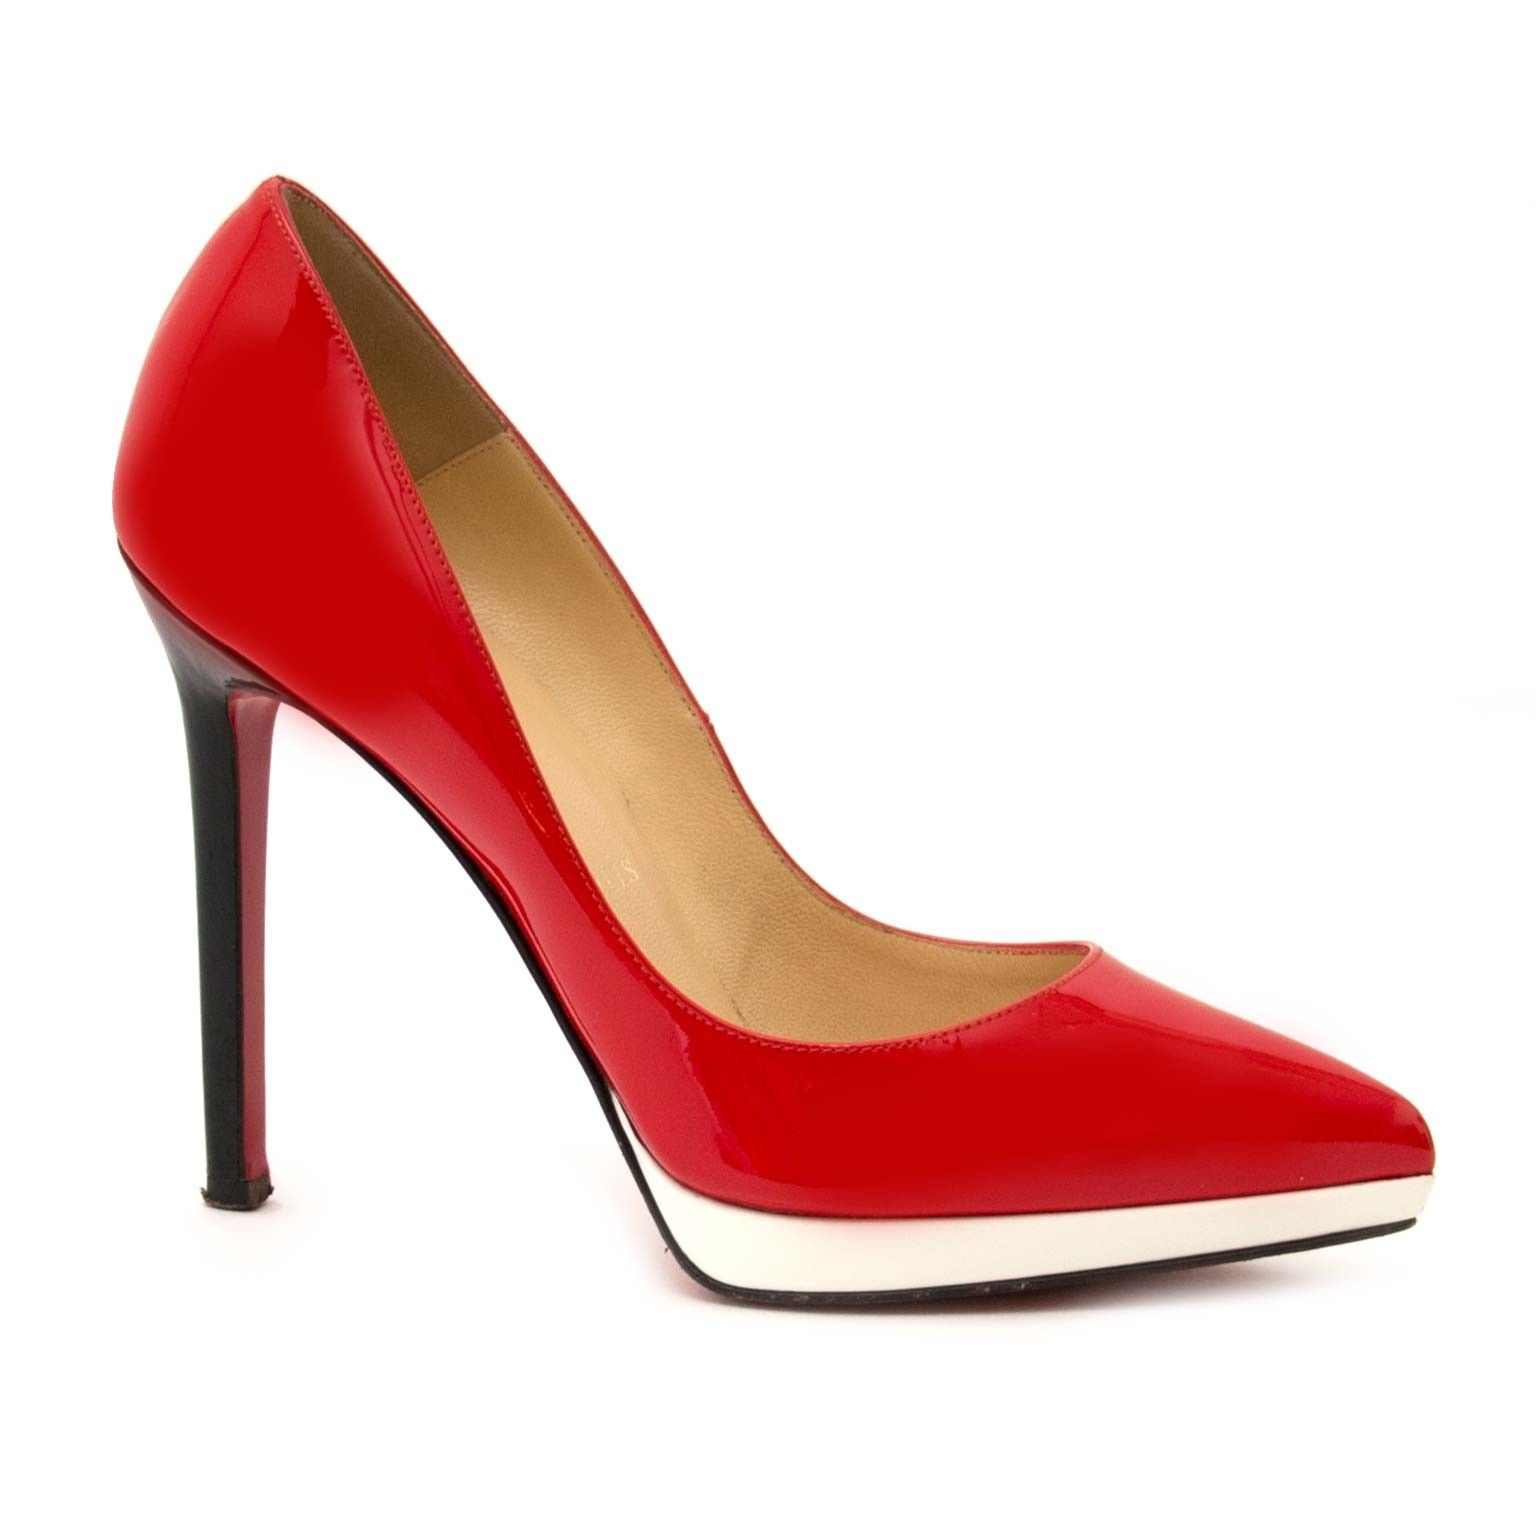 c6b215c2a0 Christian Louboutin Red Patent Pigalle Plato Pumps - Size 35,5 ...